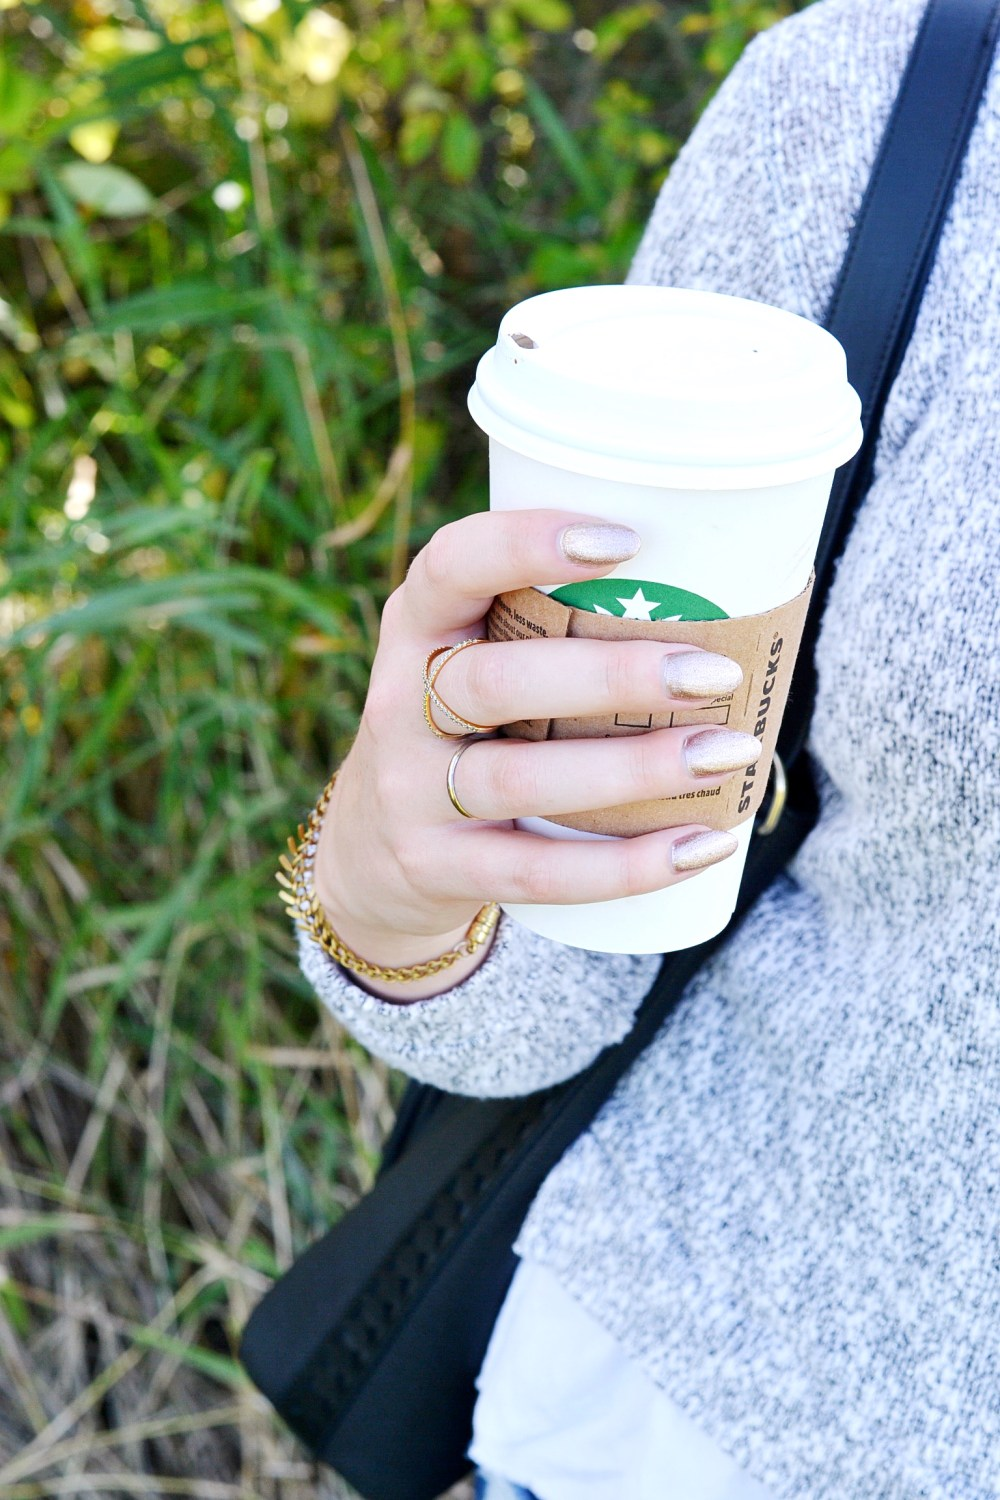 oval nails with starbucks